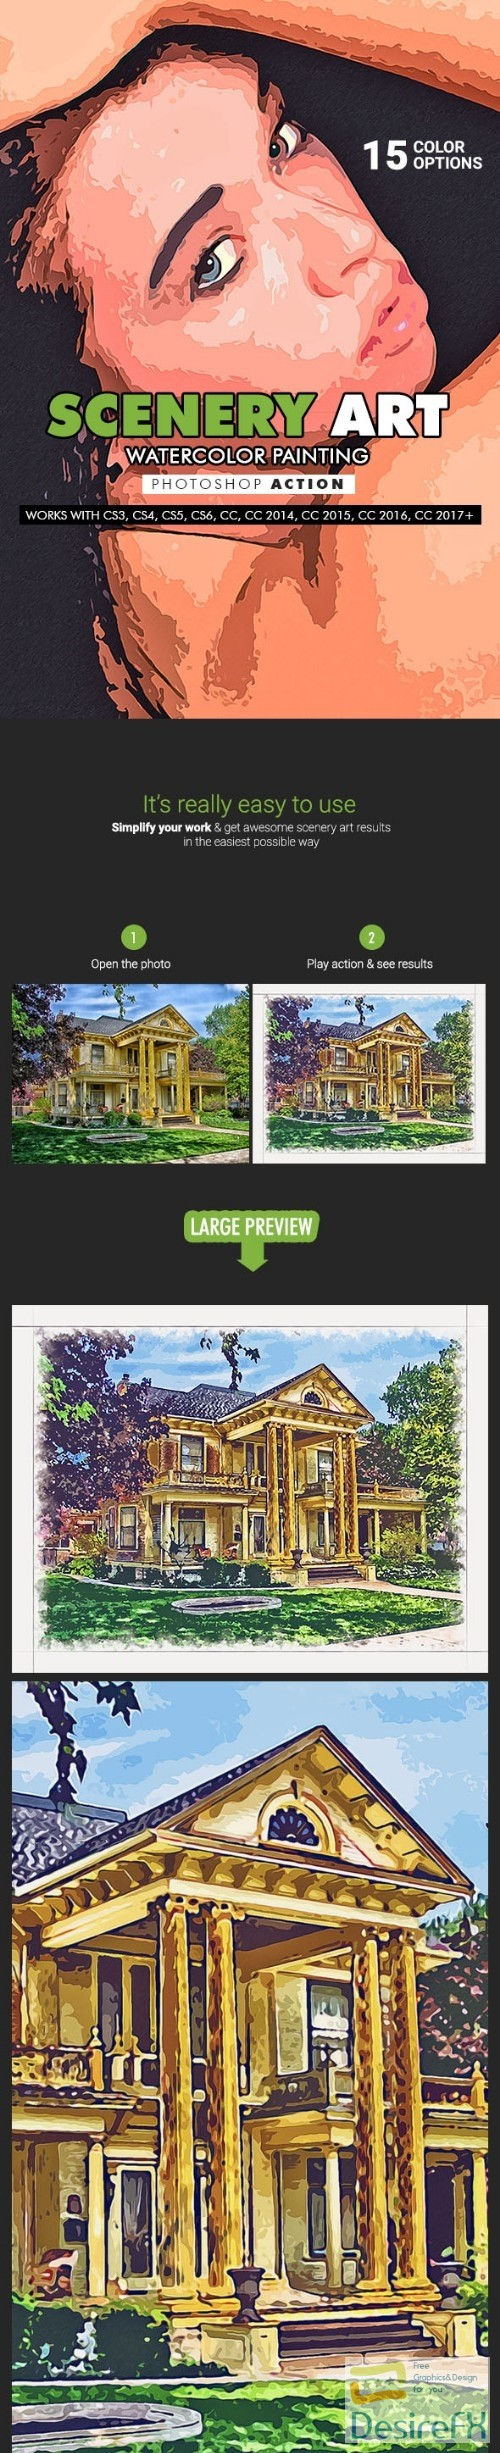 actions-atn - Scenery Art - Watercolor Painting Photoshop Action 19869916